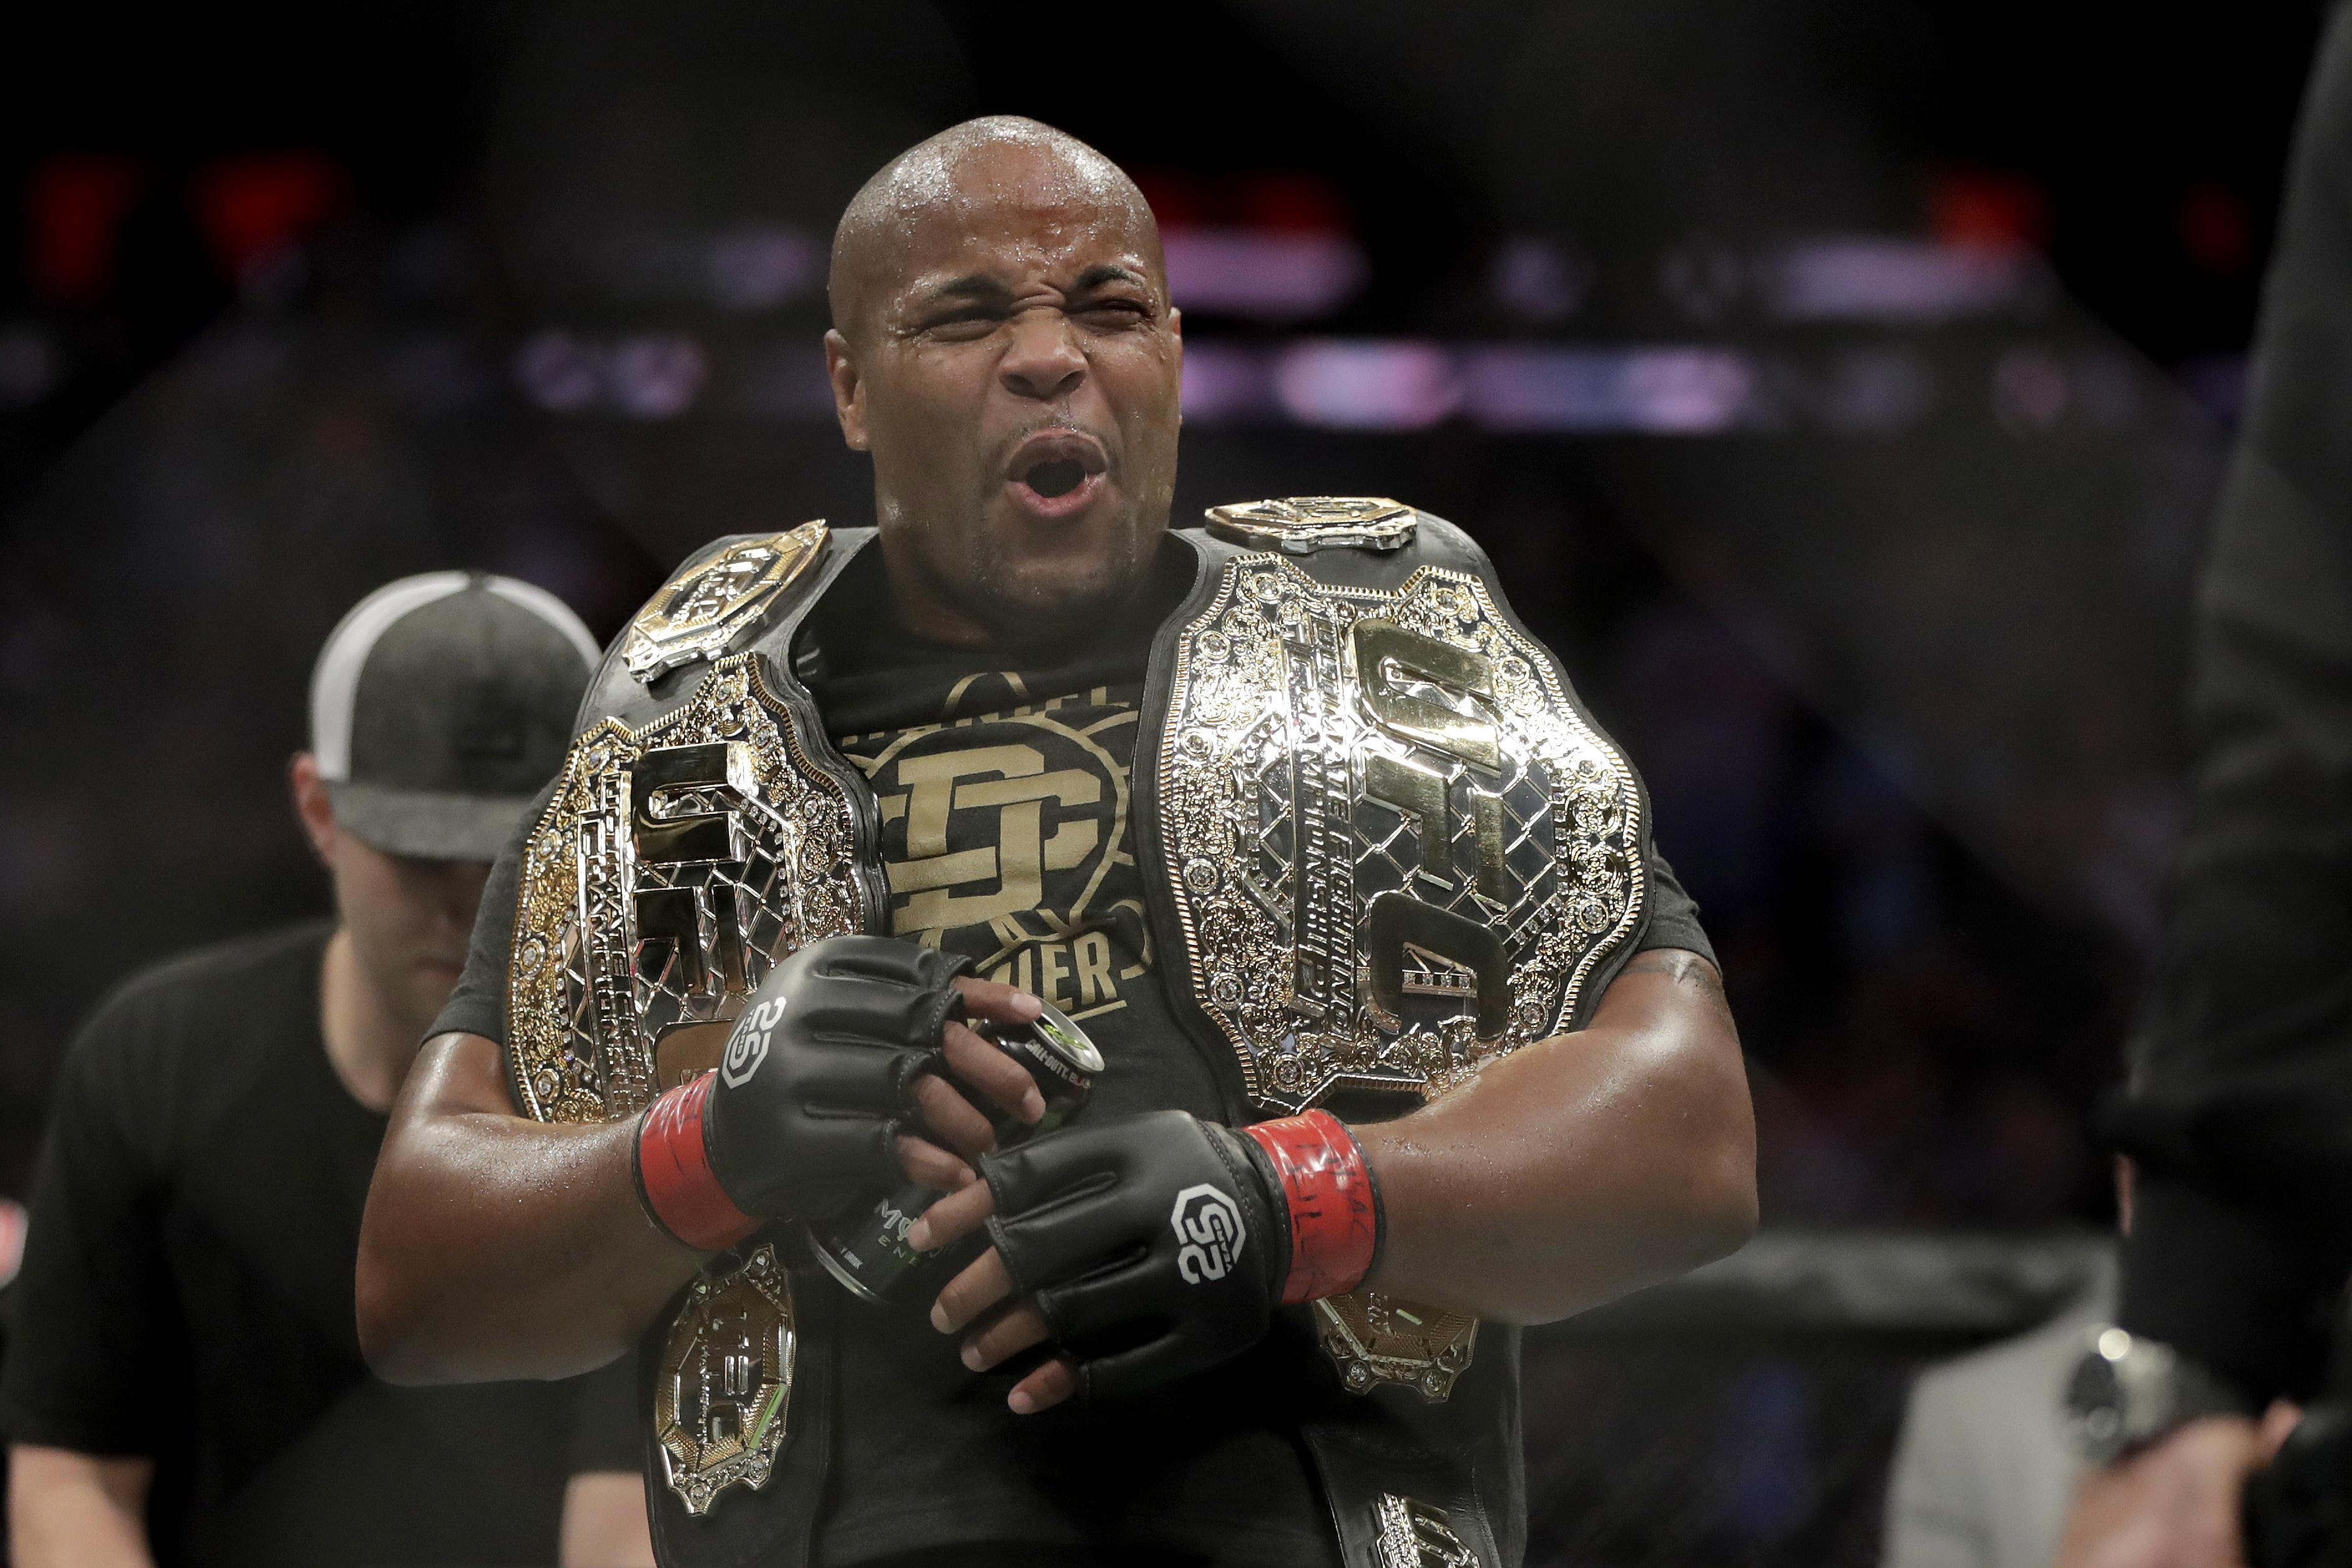 Cormier is still currently the heavyweight champion